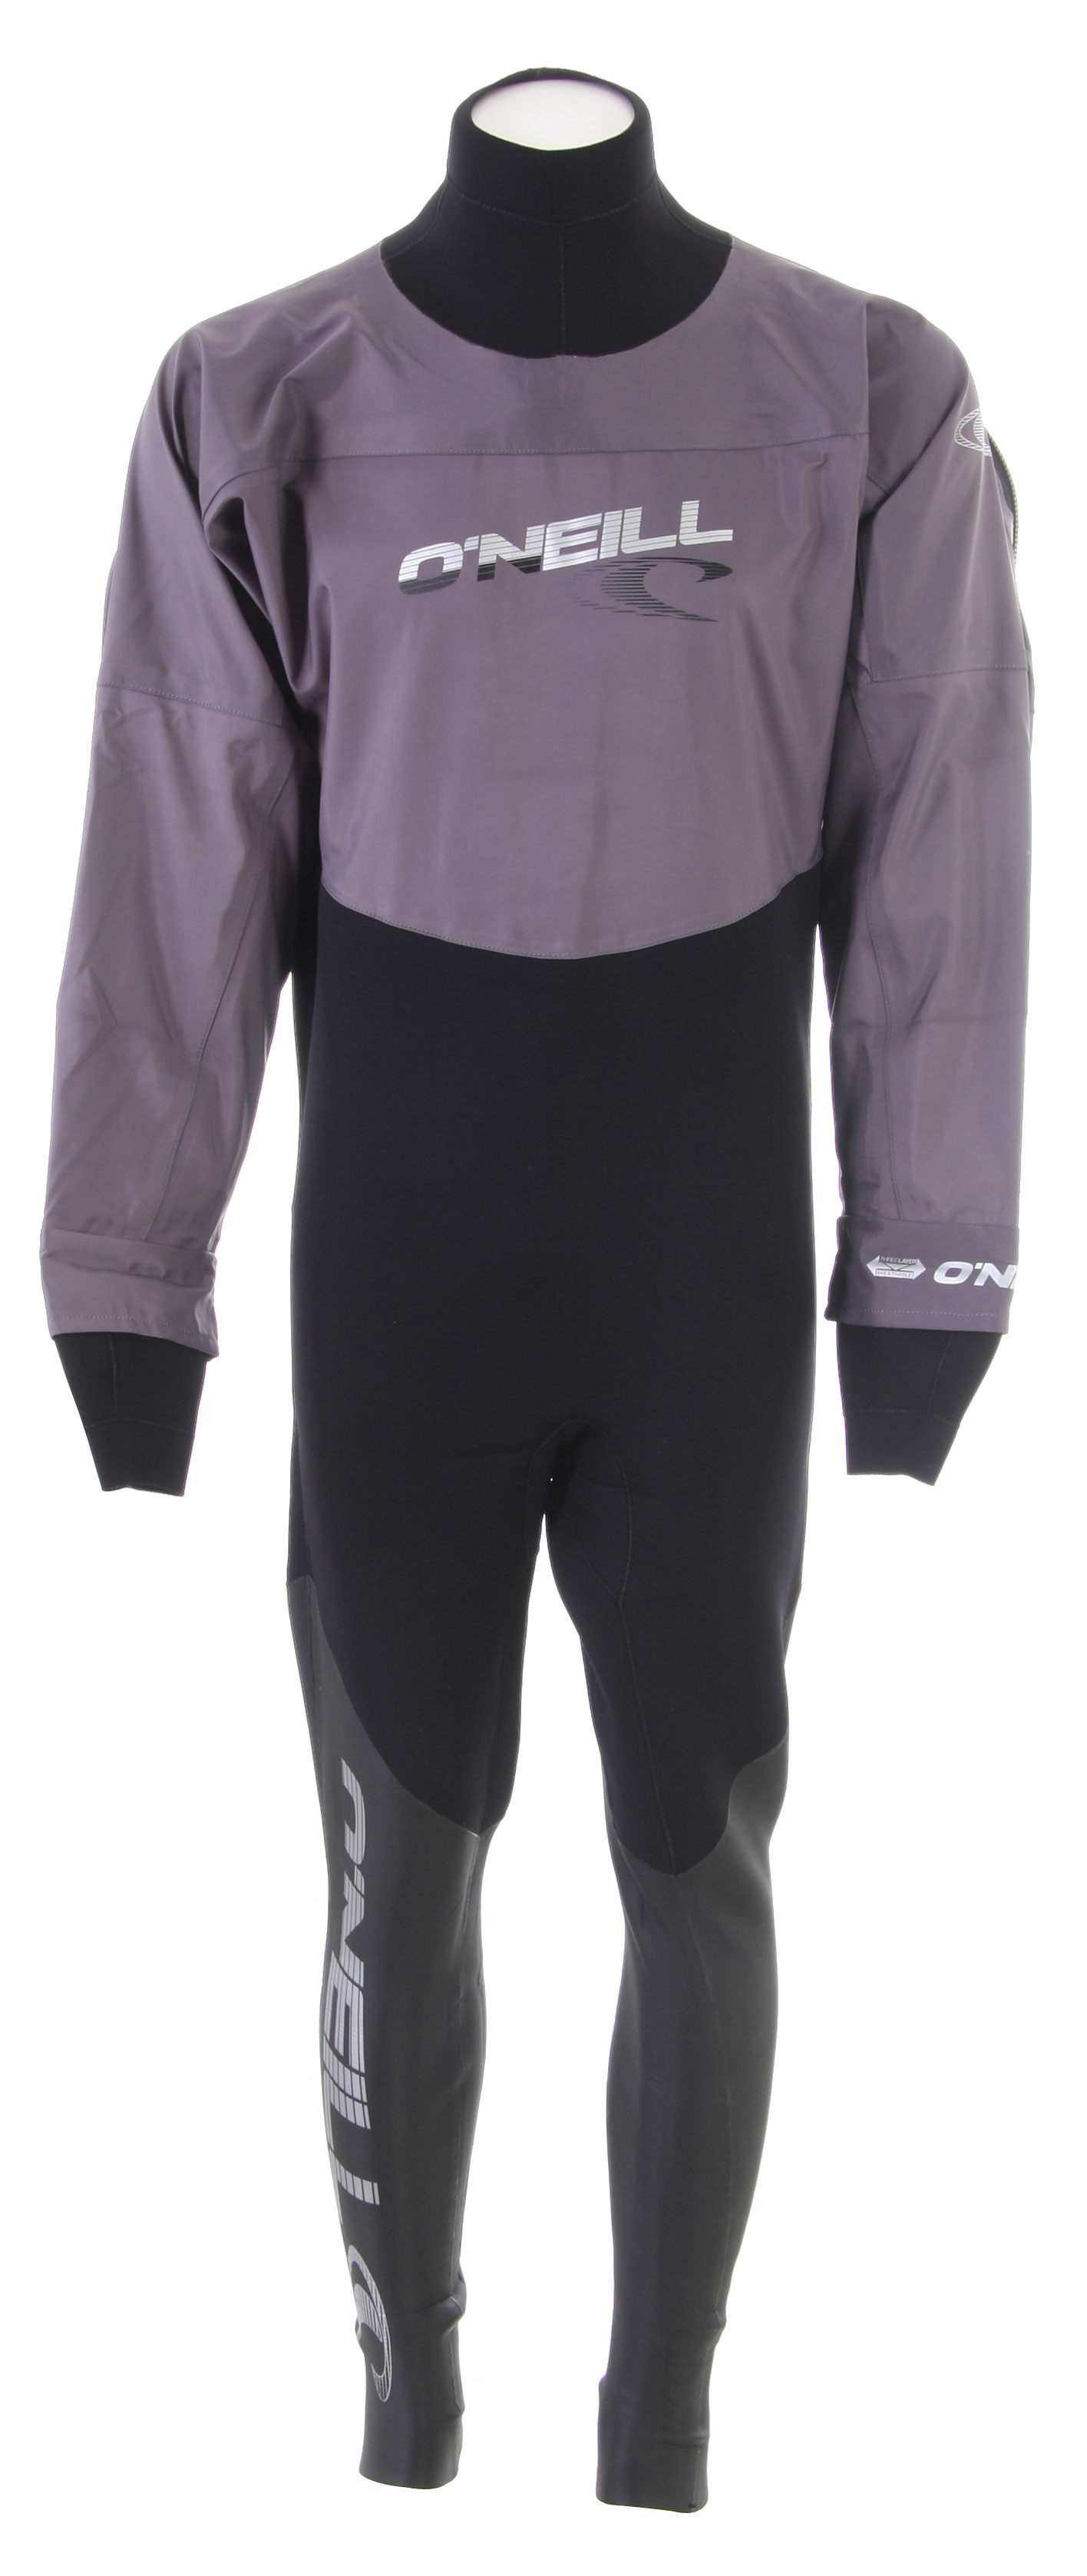 Surf The O'Neill Assault Hybrid Drysuit is designed with a baggy upper fit for additional layering, so you stay warm and dry. Streamline lower body fit delivers terrific performance. Also features waterproof horizontal back zipper, chafe-free smooth skin dry seals, and removable leg cinches. - $399.95